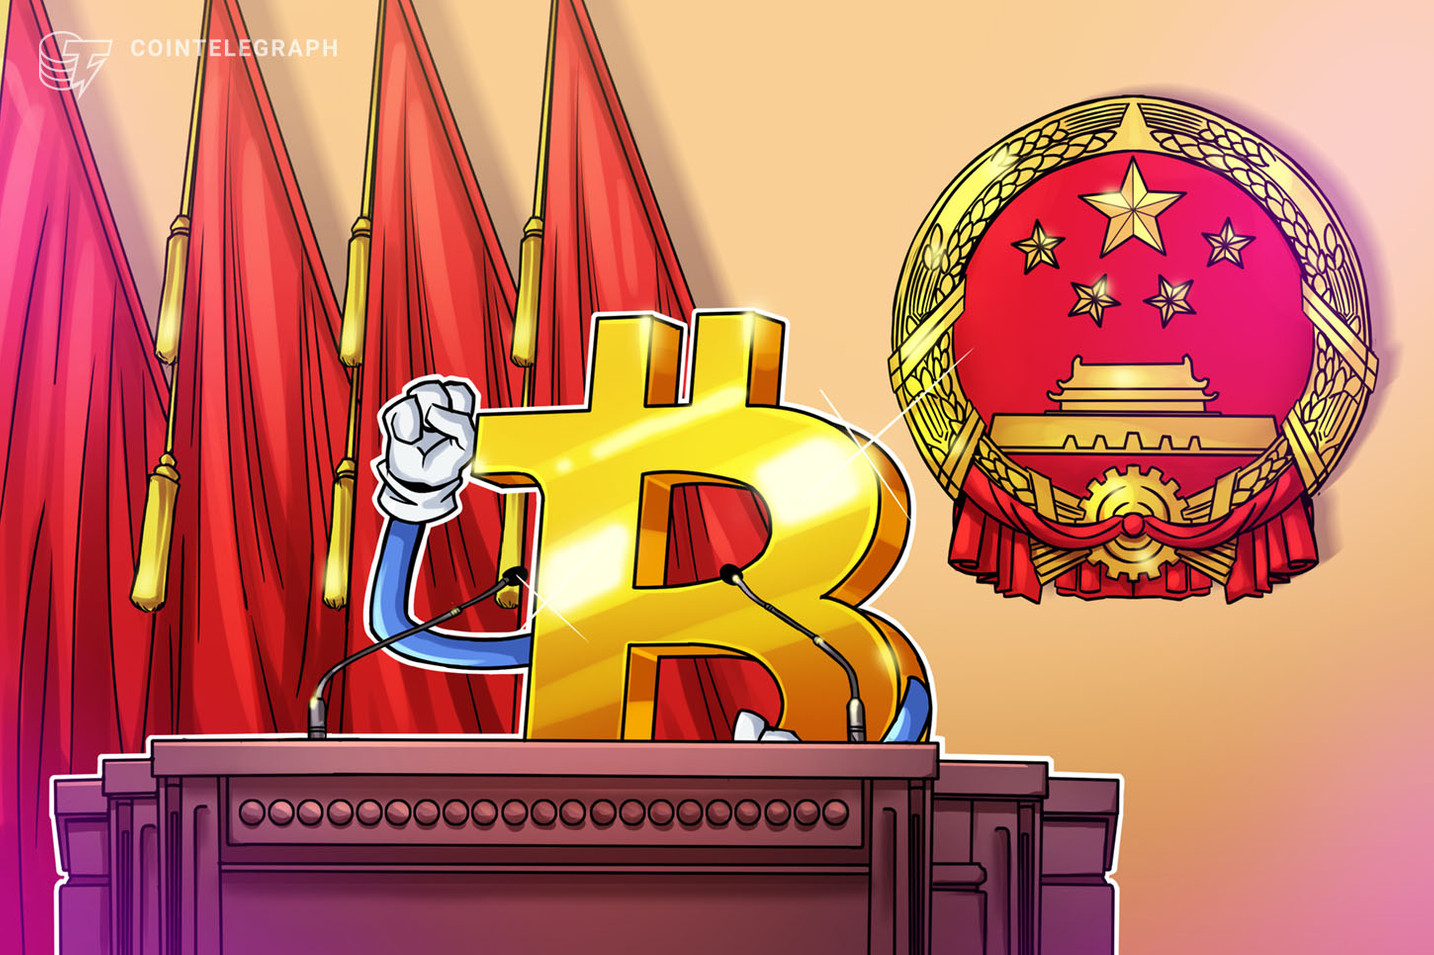 Bitcoin es un activo digital, dice un tribunal popular intermedio en China